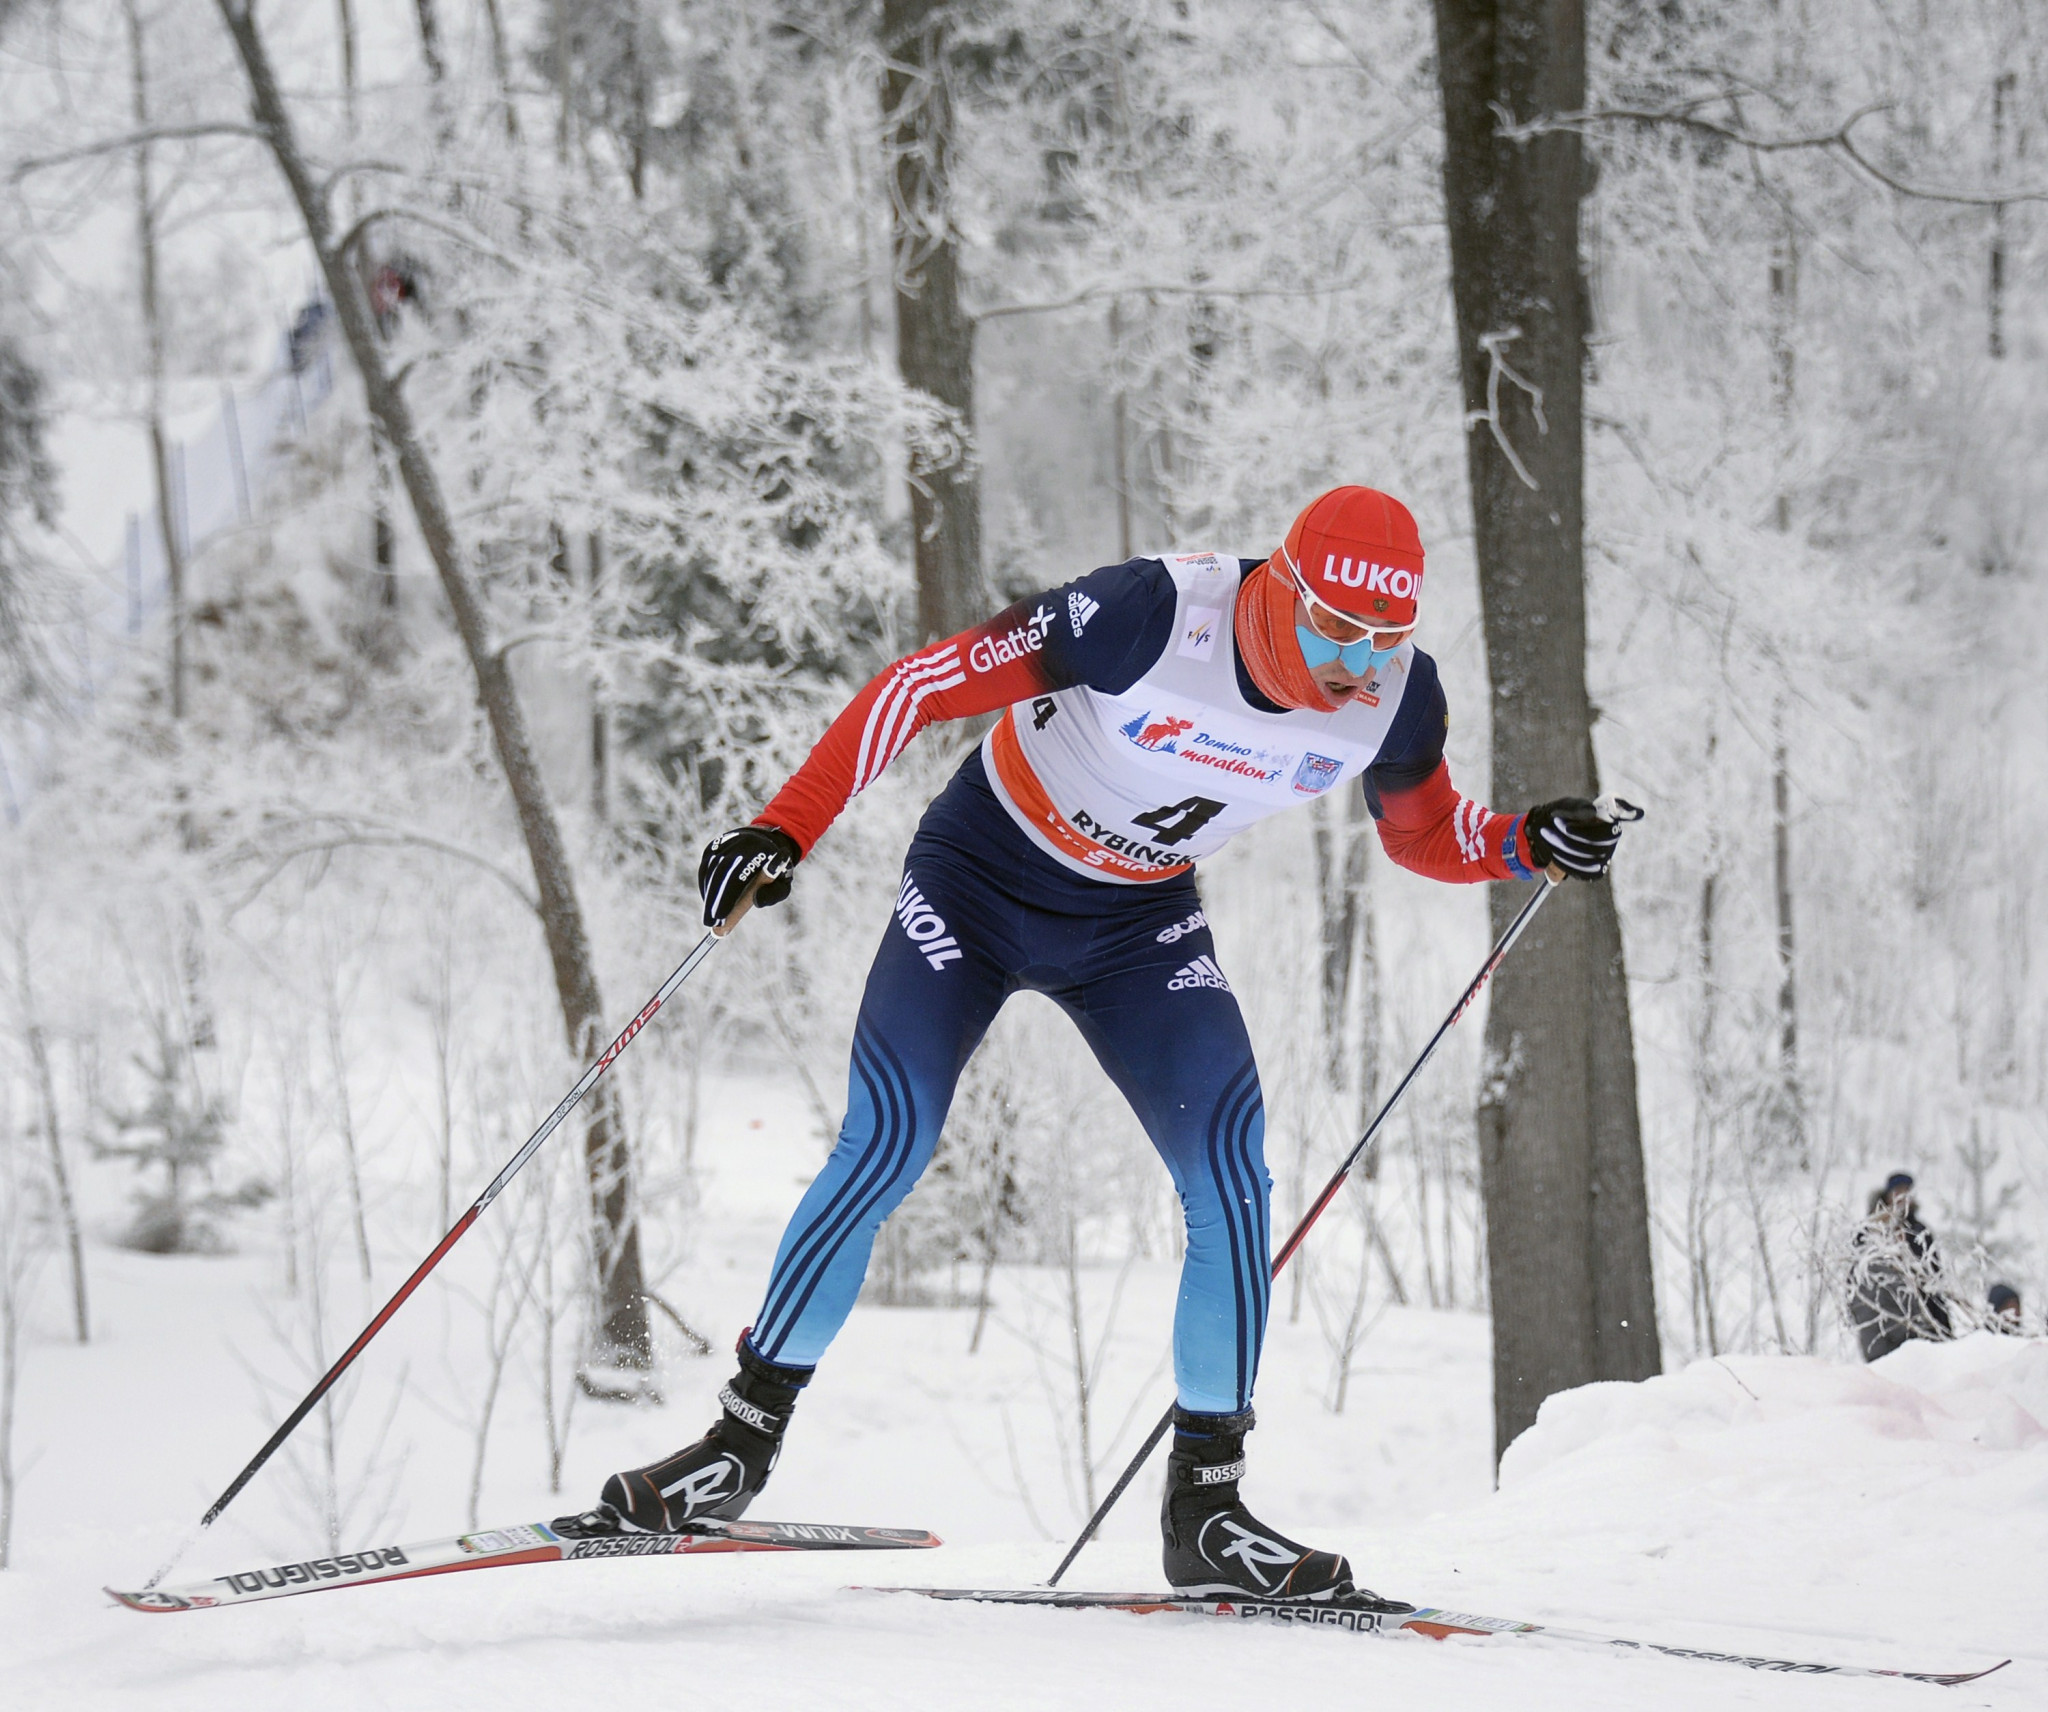 All six Russian cross-country skiers sanctioned have been cleared to compete by the FIS ©Getty Images